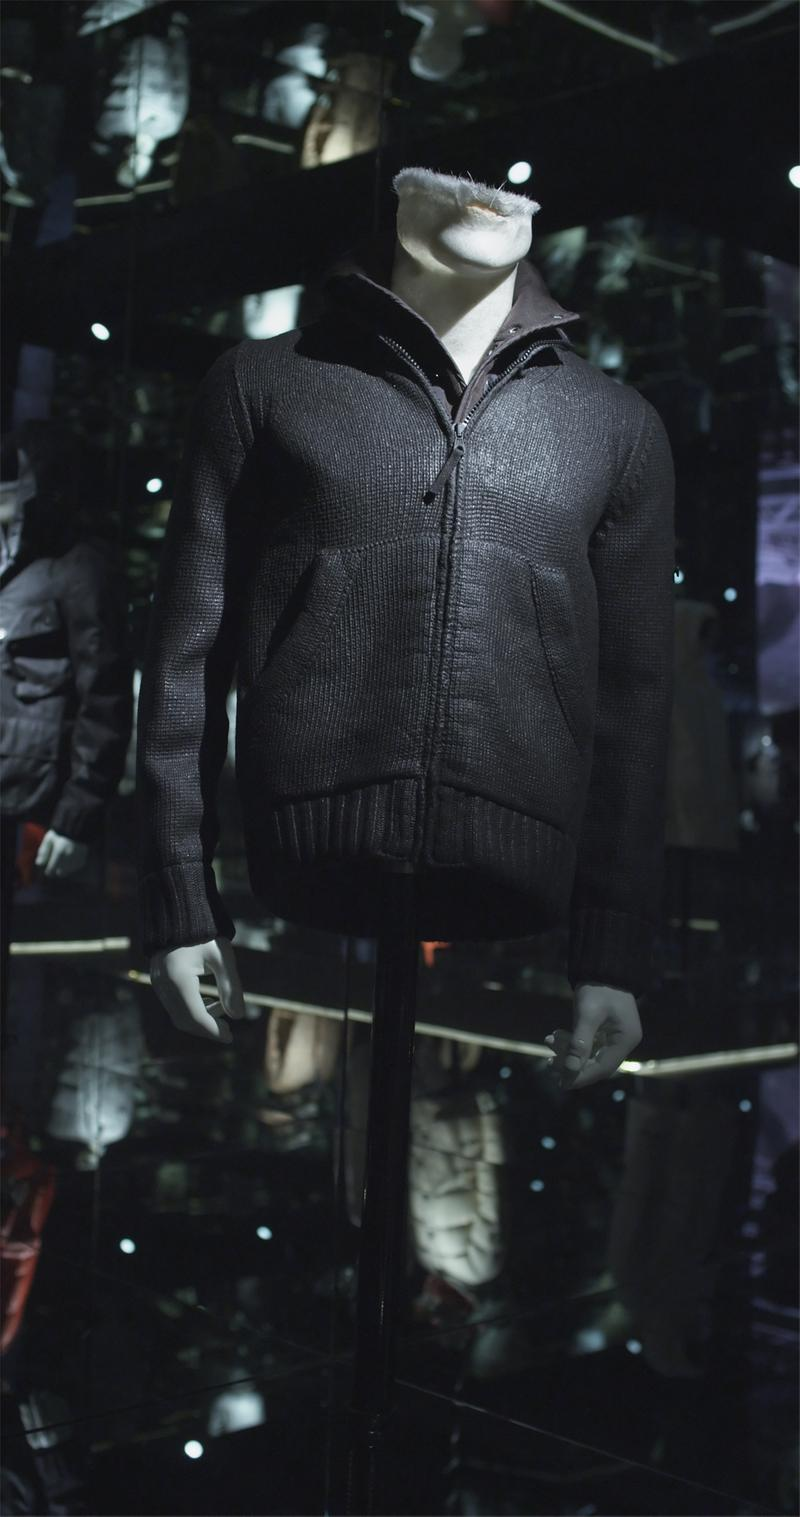 Black zip up sweater with collar, zipper closure side pockets, displayed on mannequin bust